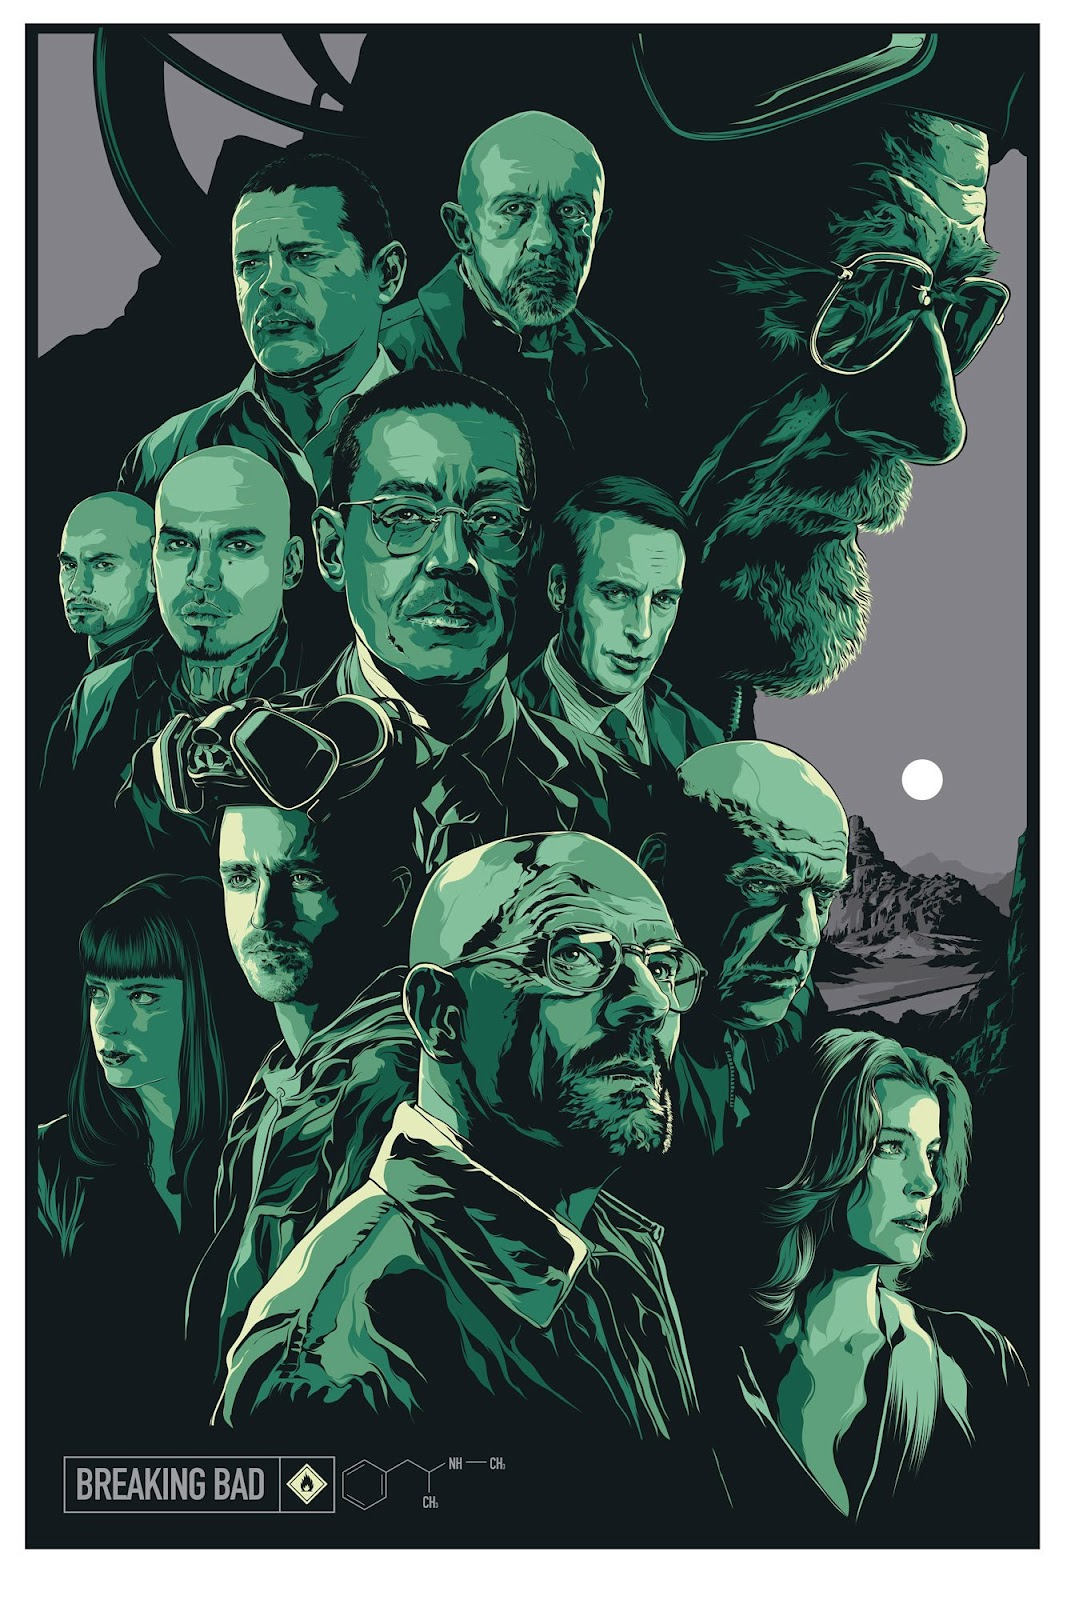 inside the rock poster frame blog the final breaking bad art project poster by ken taylor revealed. Black Bedroom Furniture Sets. Home Design Ideas